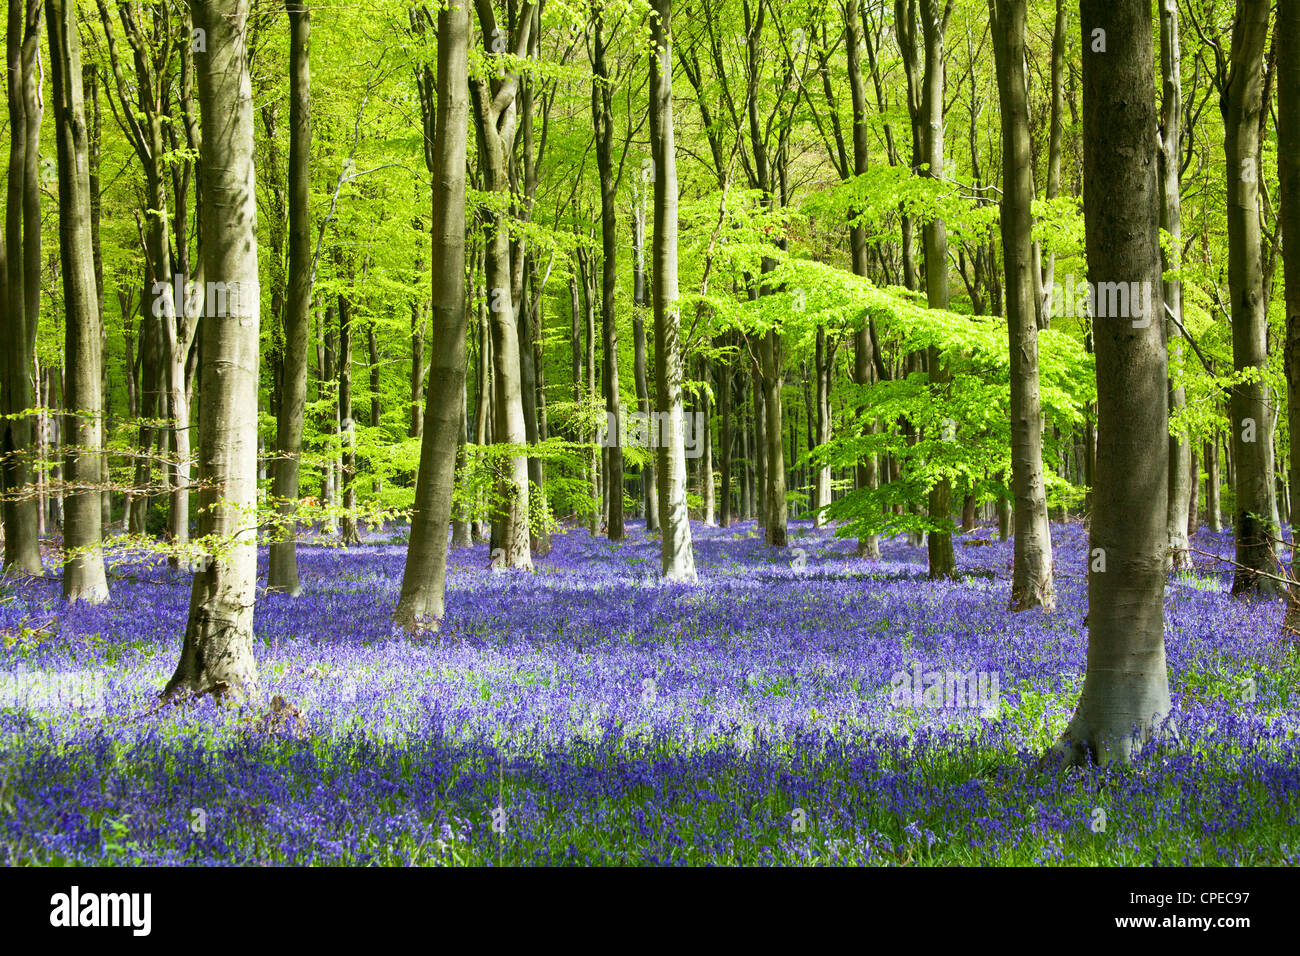 Dappled sunshine falls through fresh green foliage in a beechwood of bluebells in England, UK Stock Photo